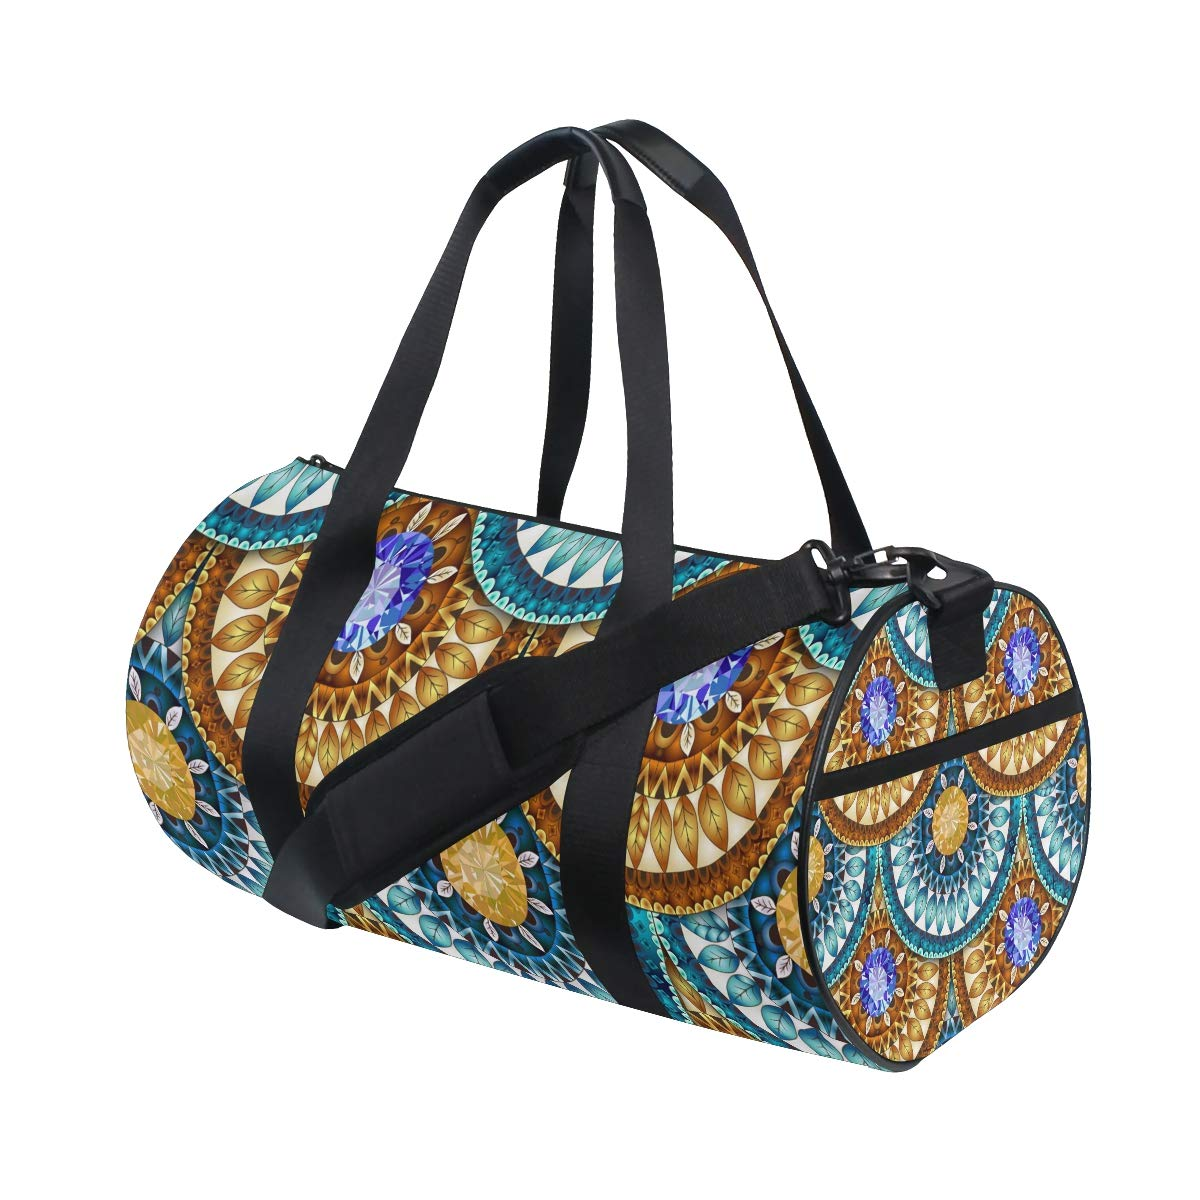 WIHVE Geometric Pattern In Fish Scale Sports Gym Bag Travel Overnight Duffel Bag for Men and Women